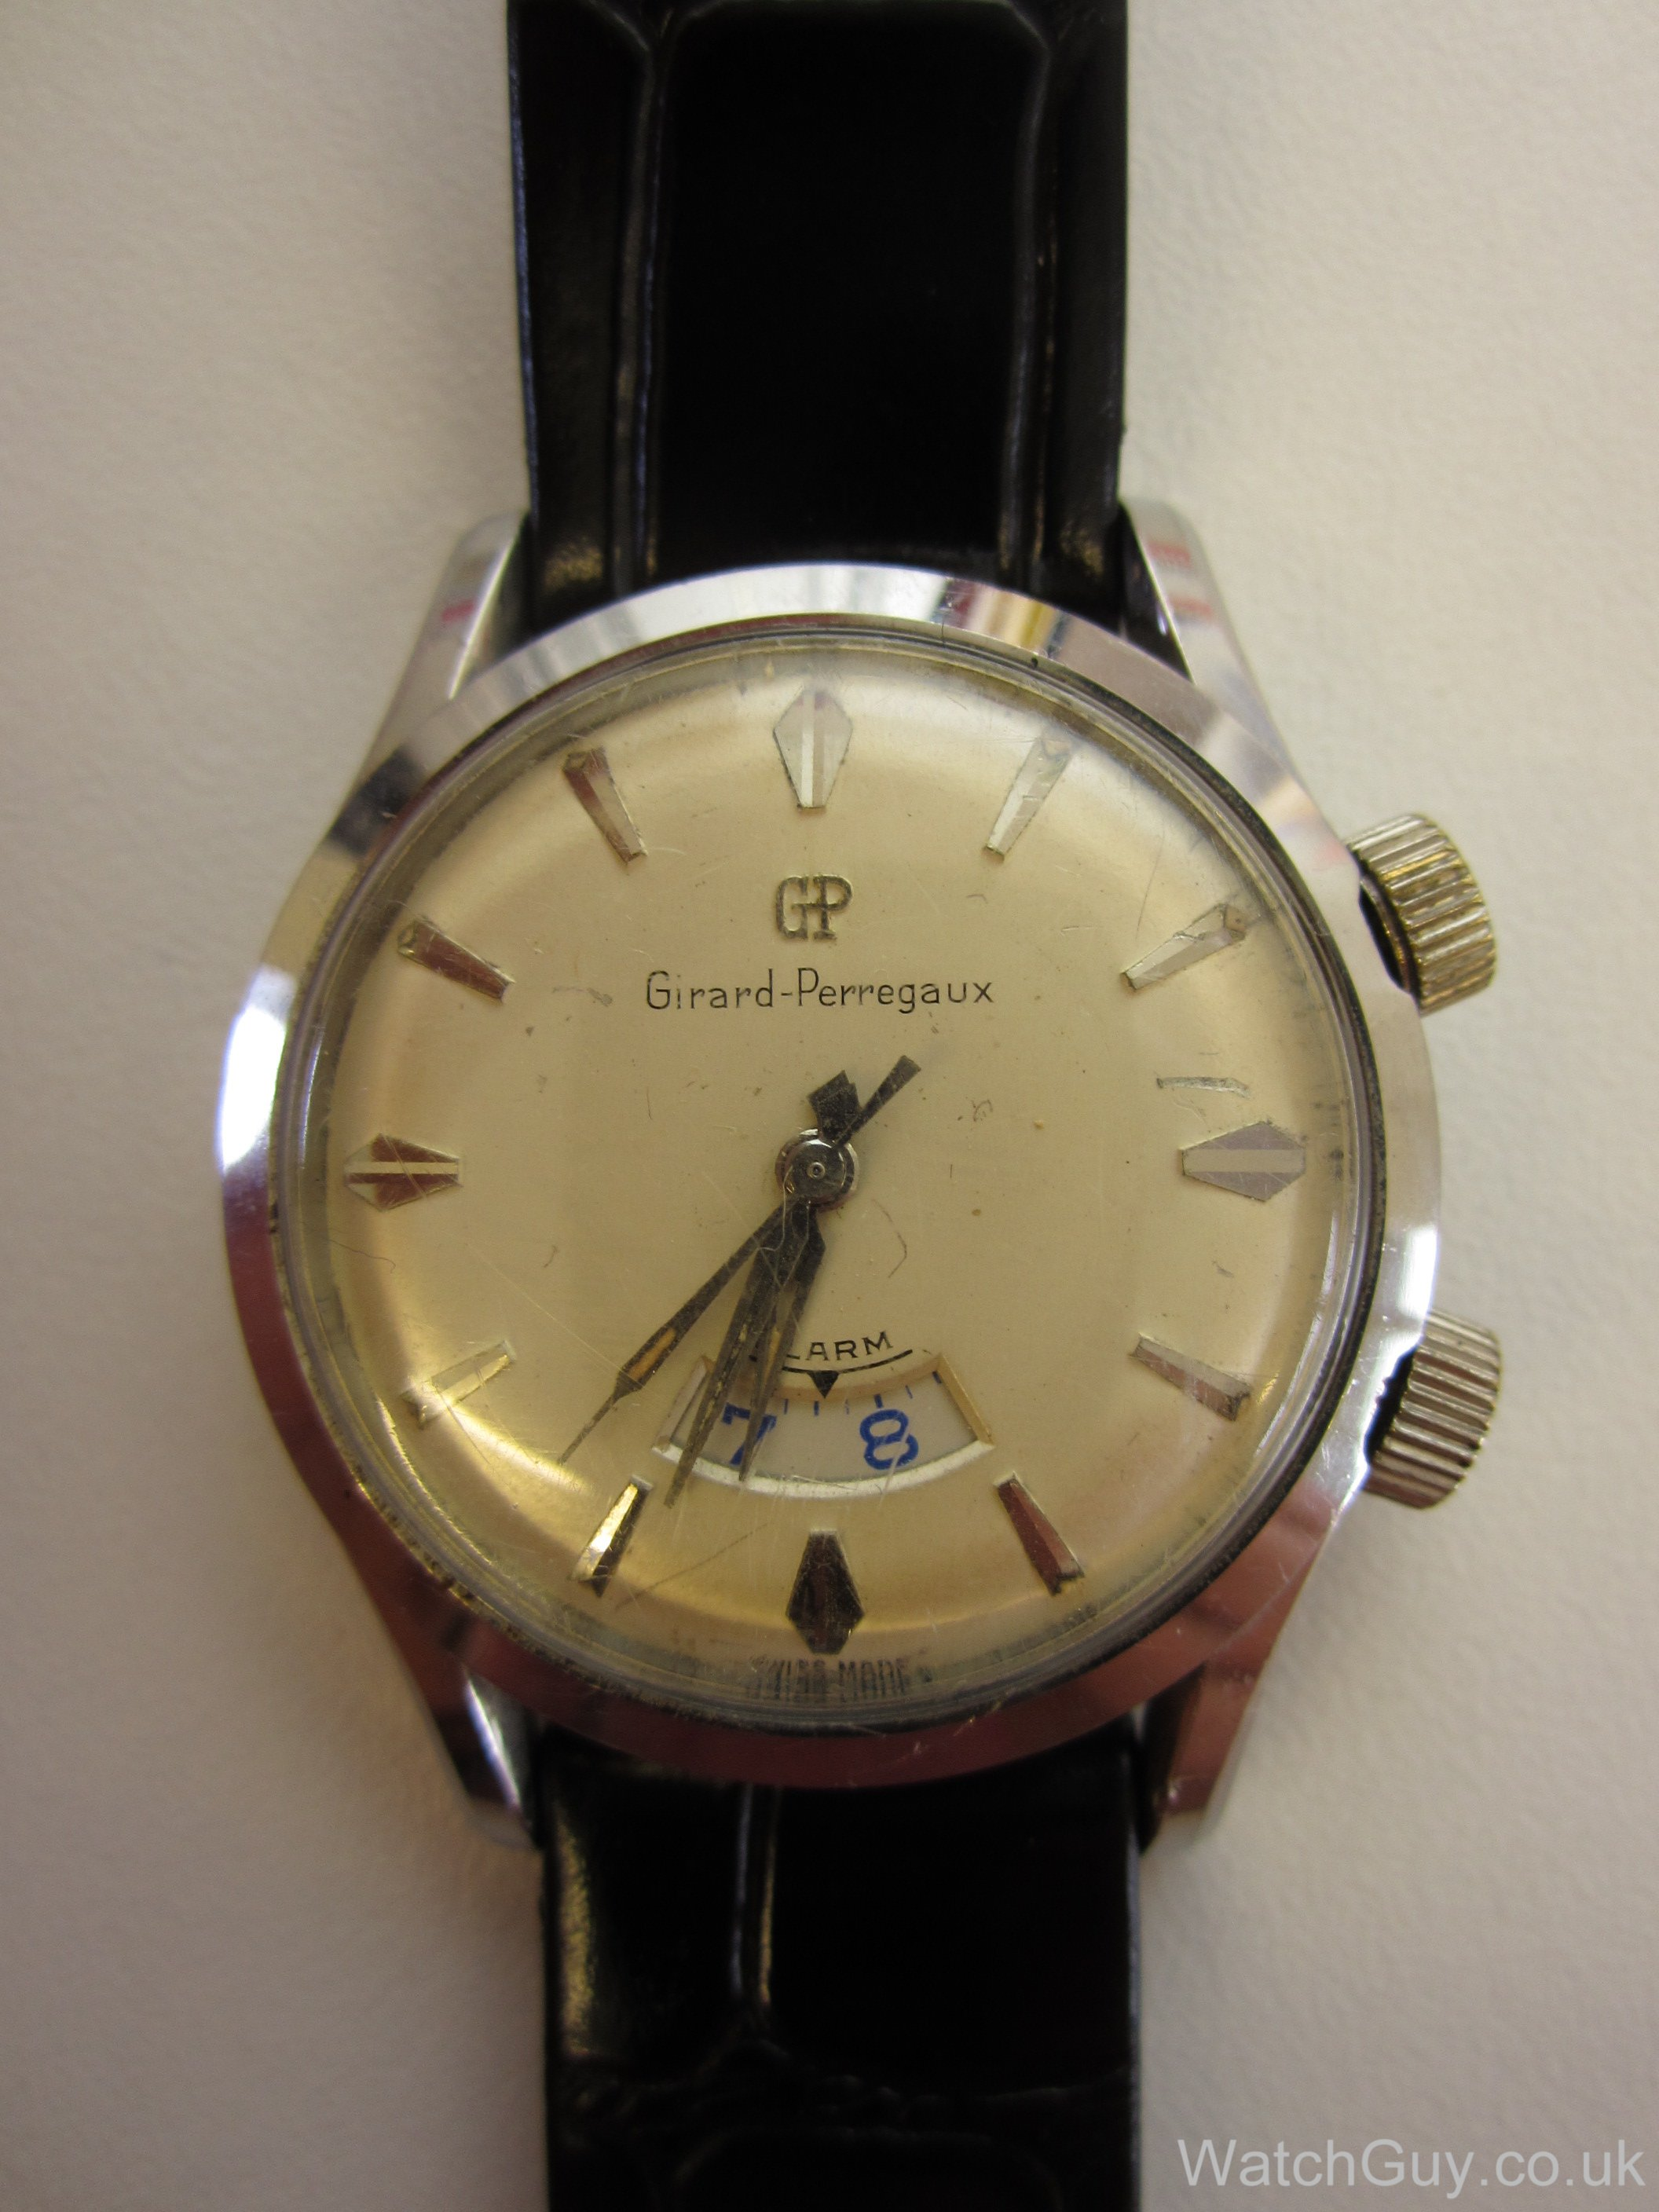 Service girard perregaux alarm as1475 watch guy for Girard perregaux